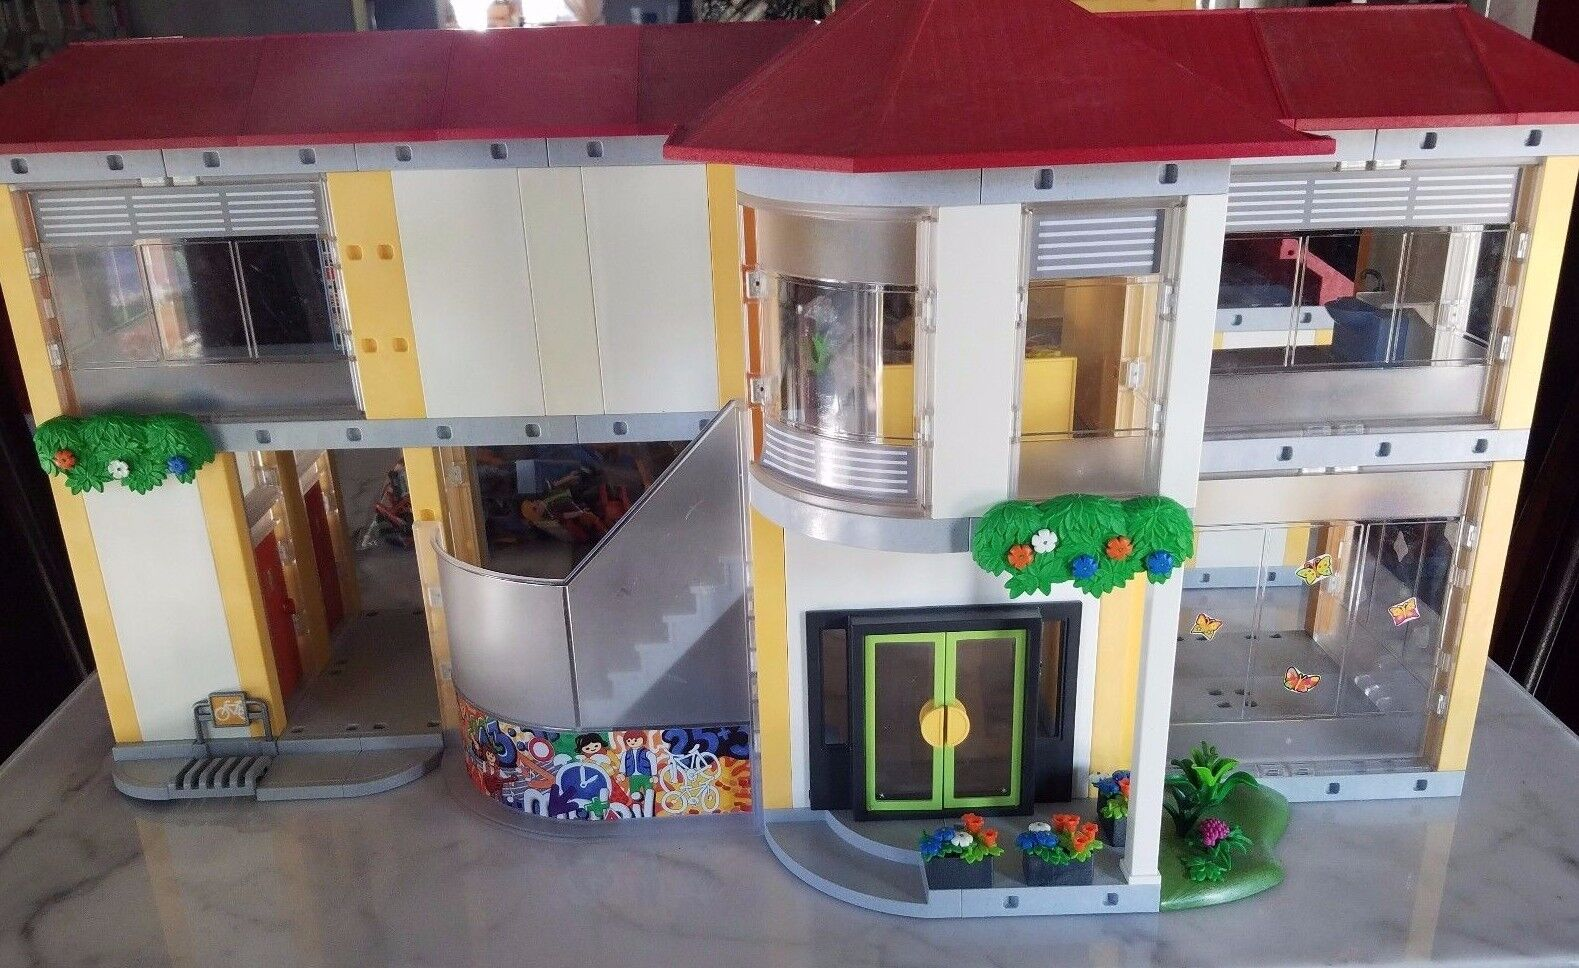 Playmobil Large School 4324 Building Play Play Play Set Construction Kit + Accessories Toy db4655